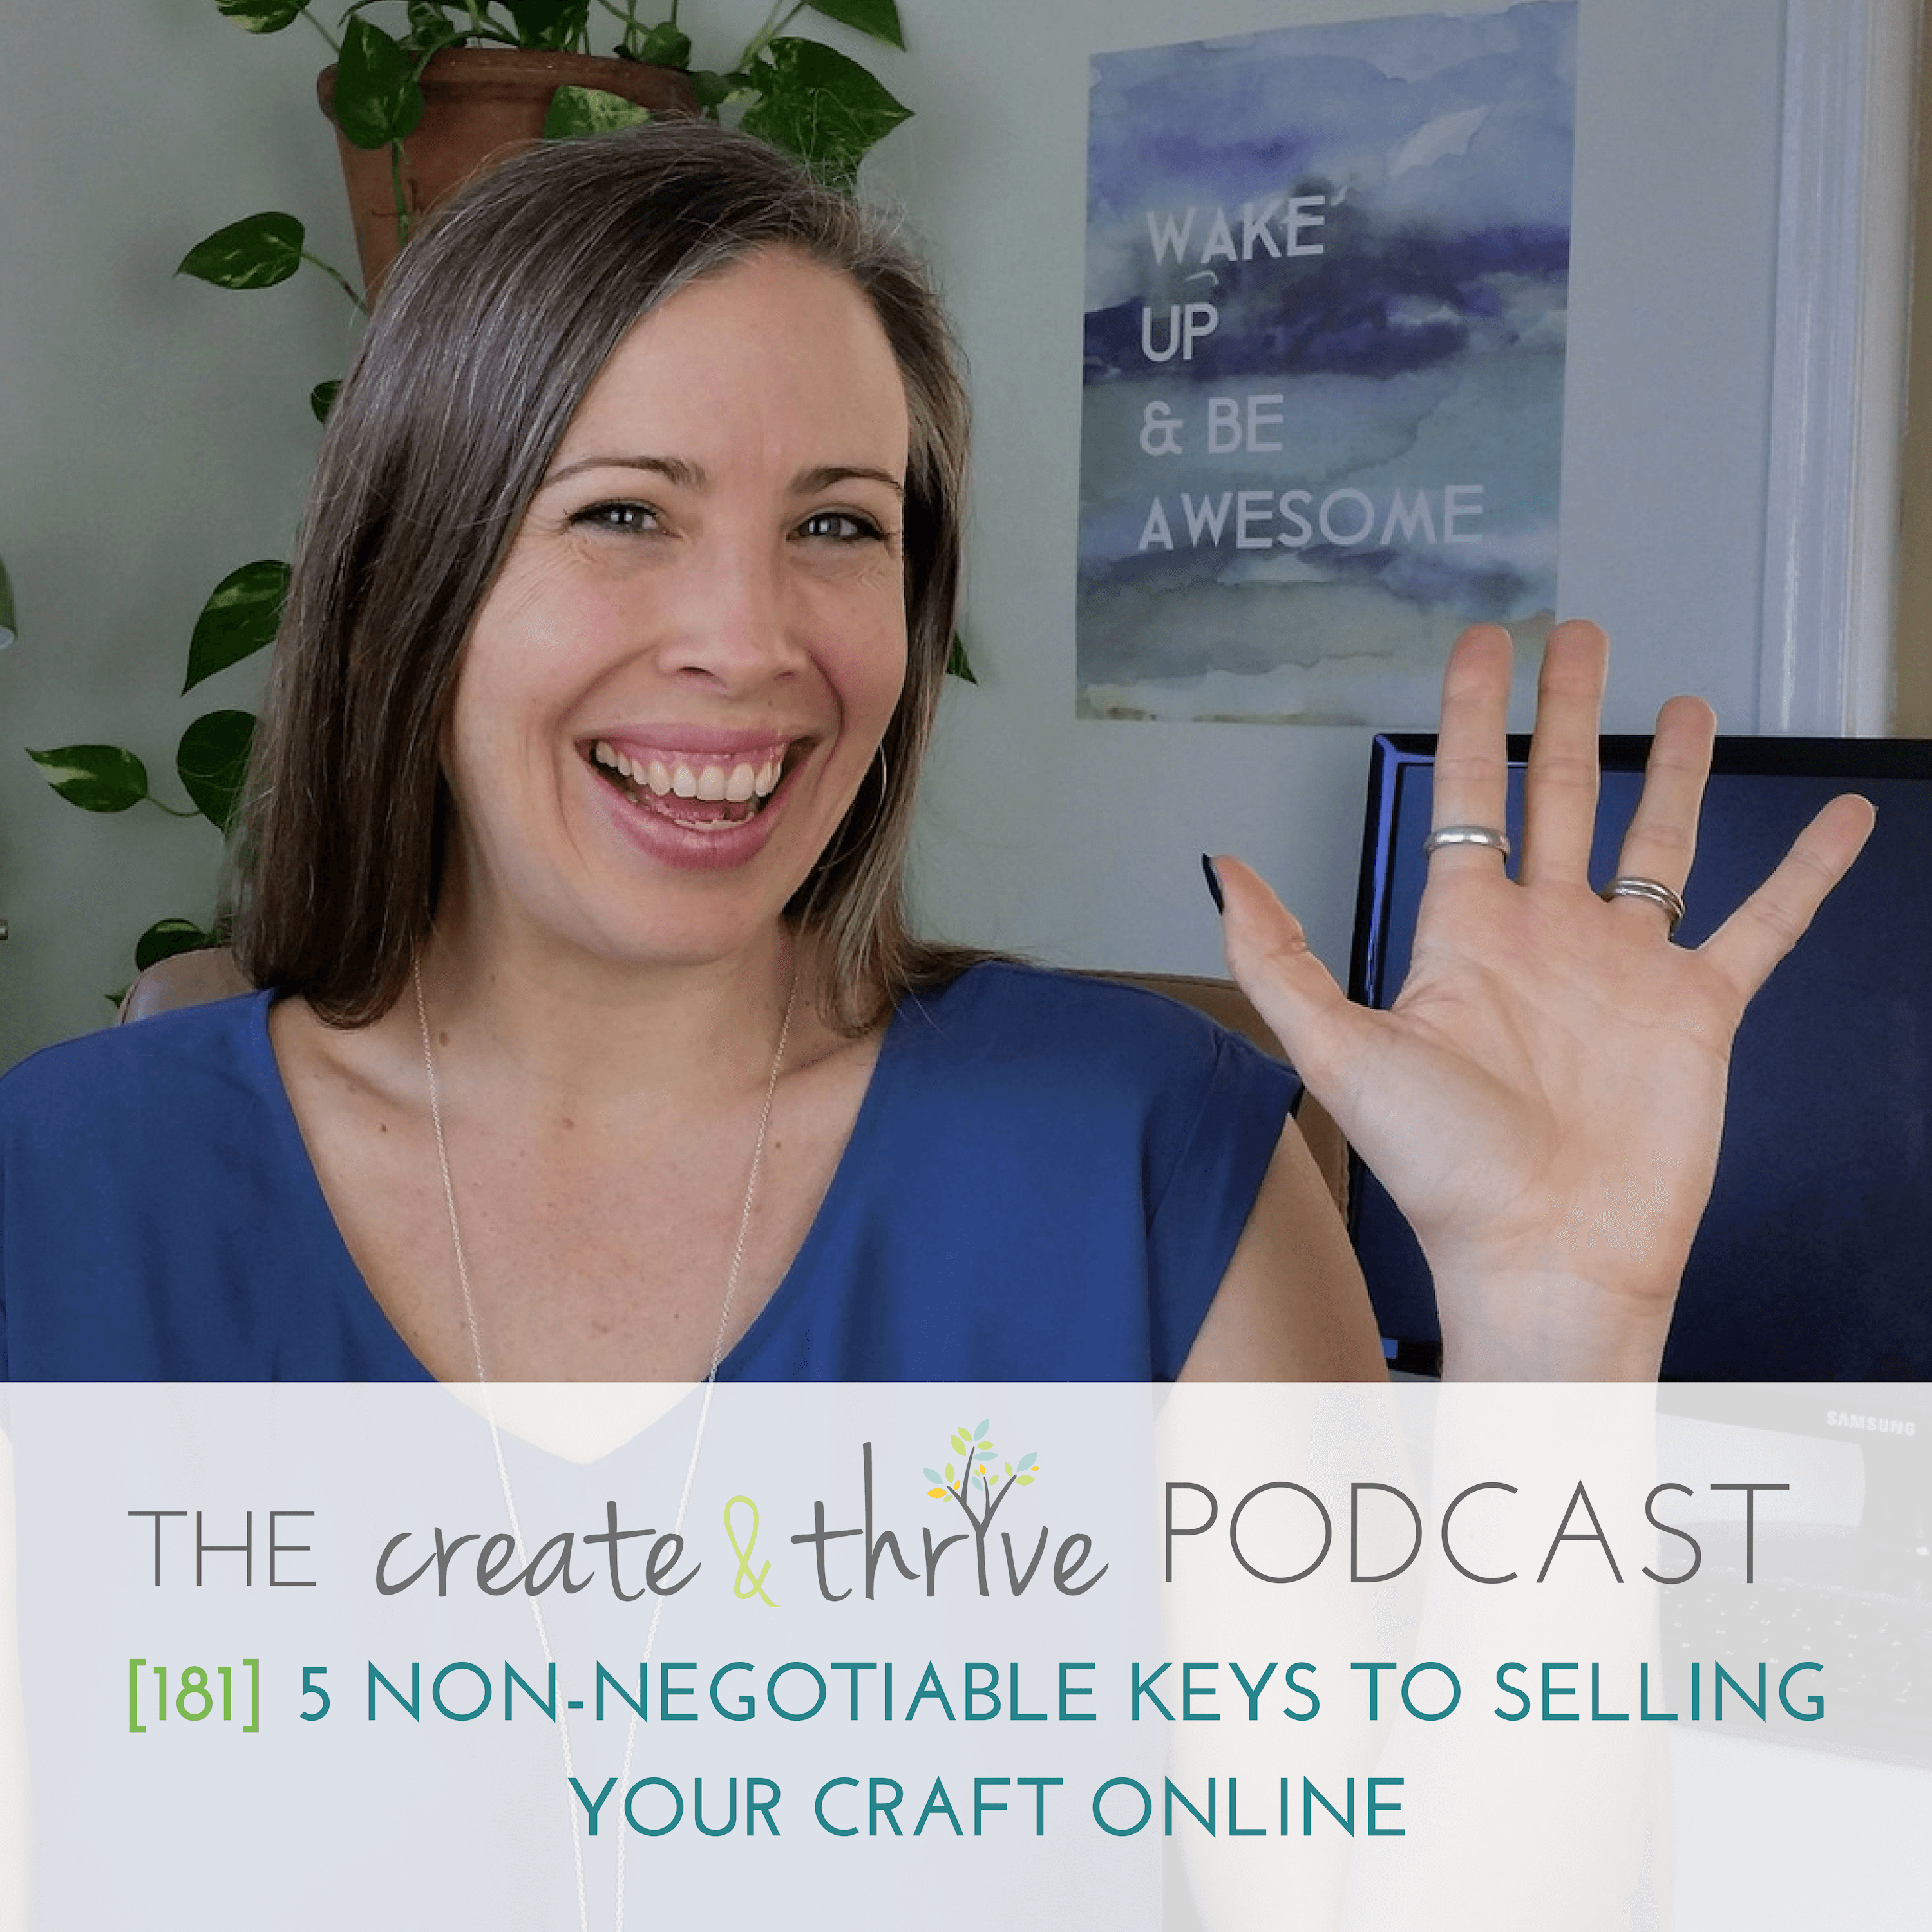 [181] 5 Non-Negotiable Keys to Selling Your Craft Online